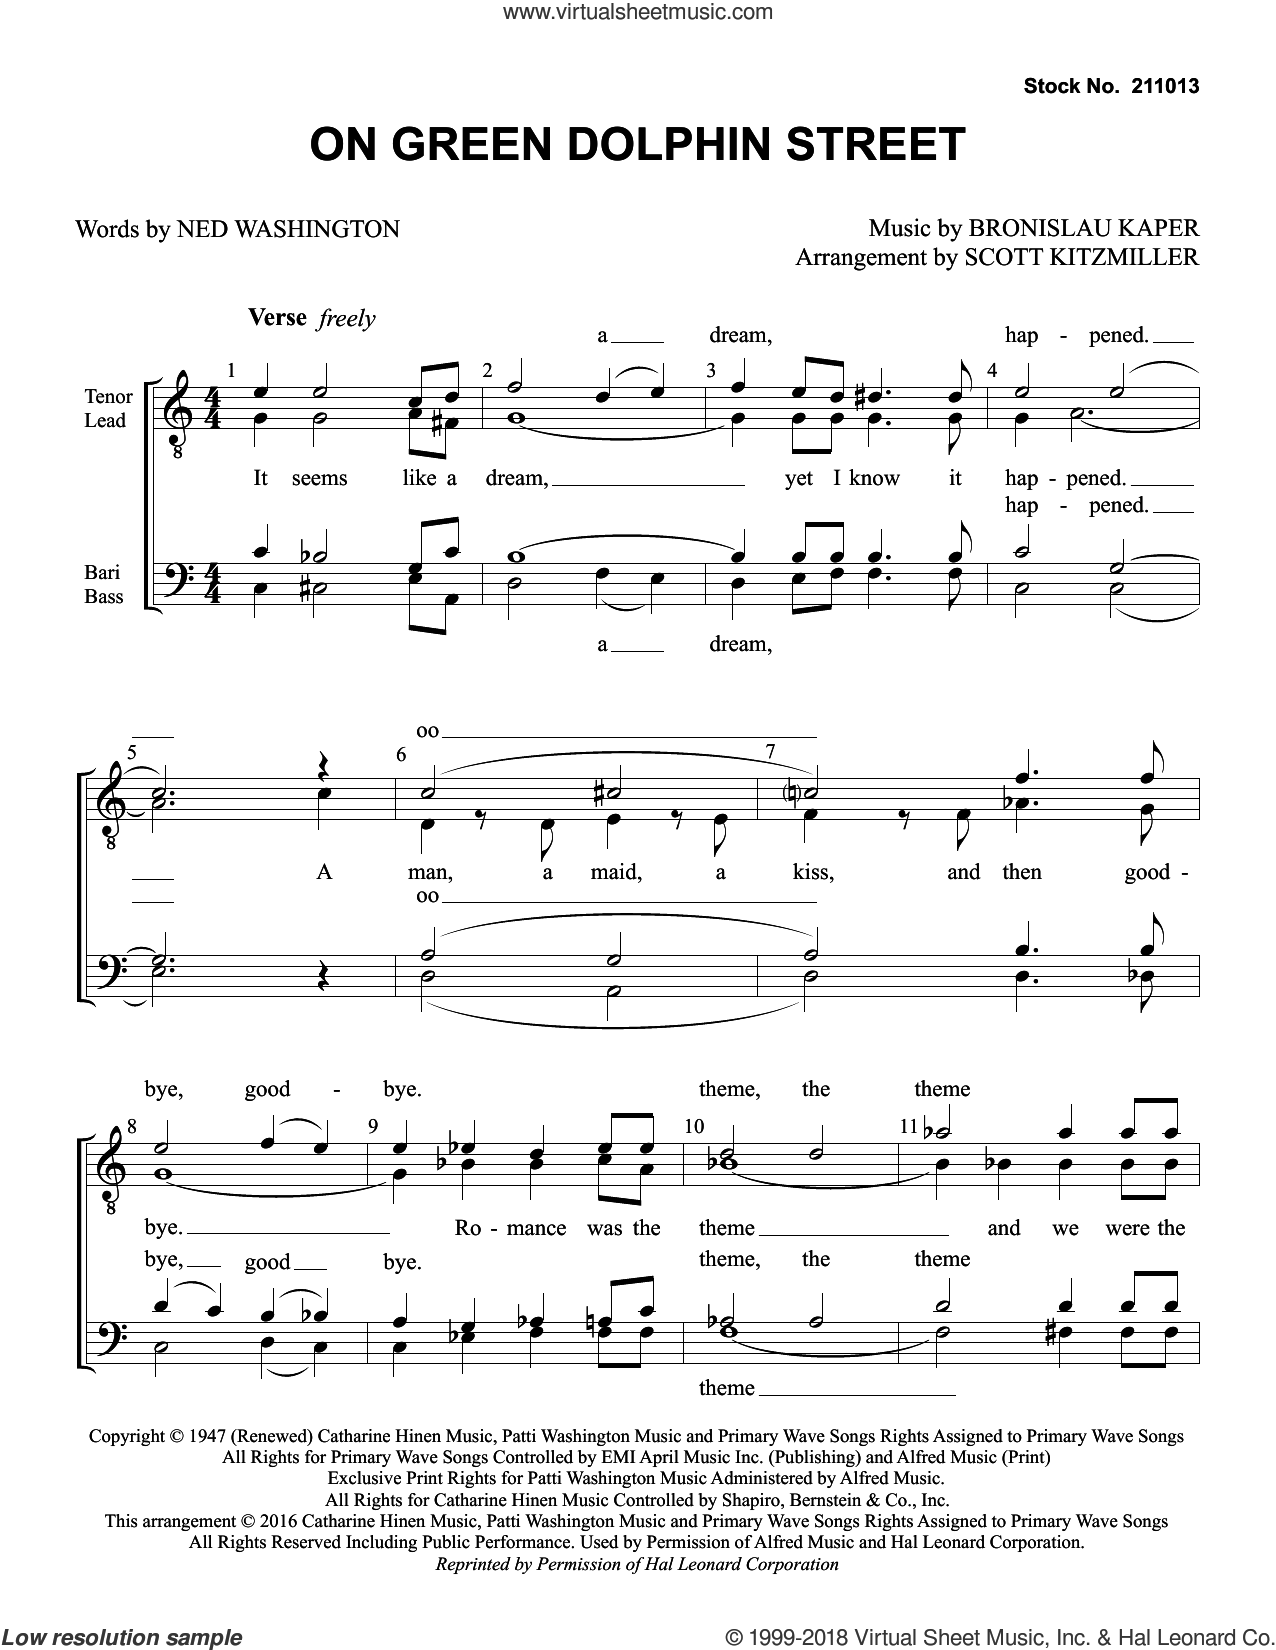 On Green Dolphin Street (arr. Scott Kitzmiller) sheet music for choir (TTBB: tenor, bass) by Jimmy Dorsey Orchestra, Scott Kitzmiller, Bronislau Kaper and Ned Washington, intermediate skill level